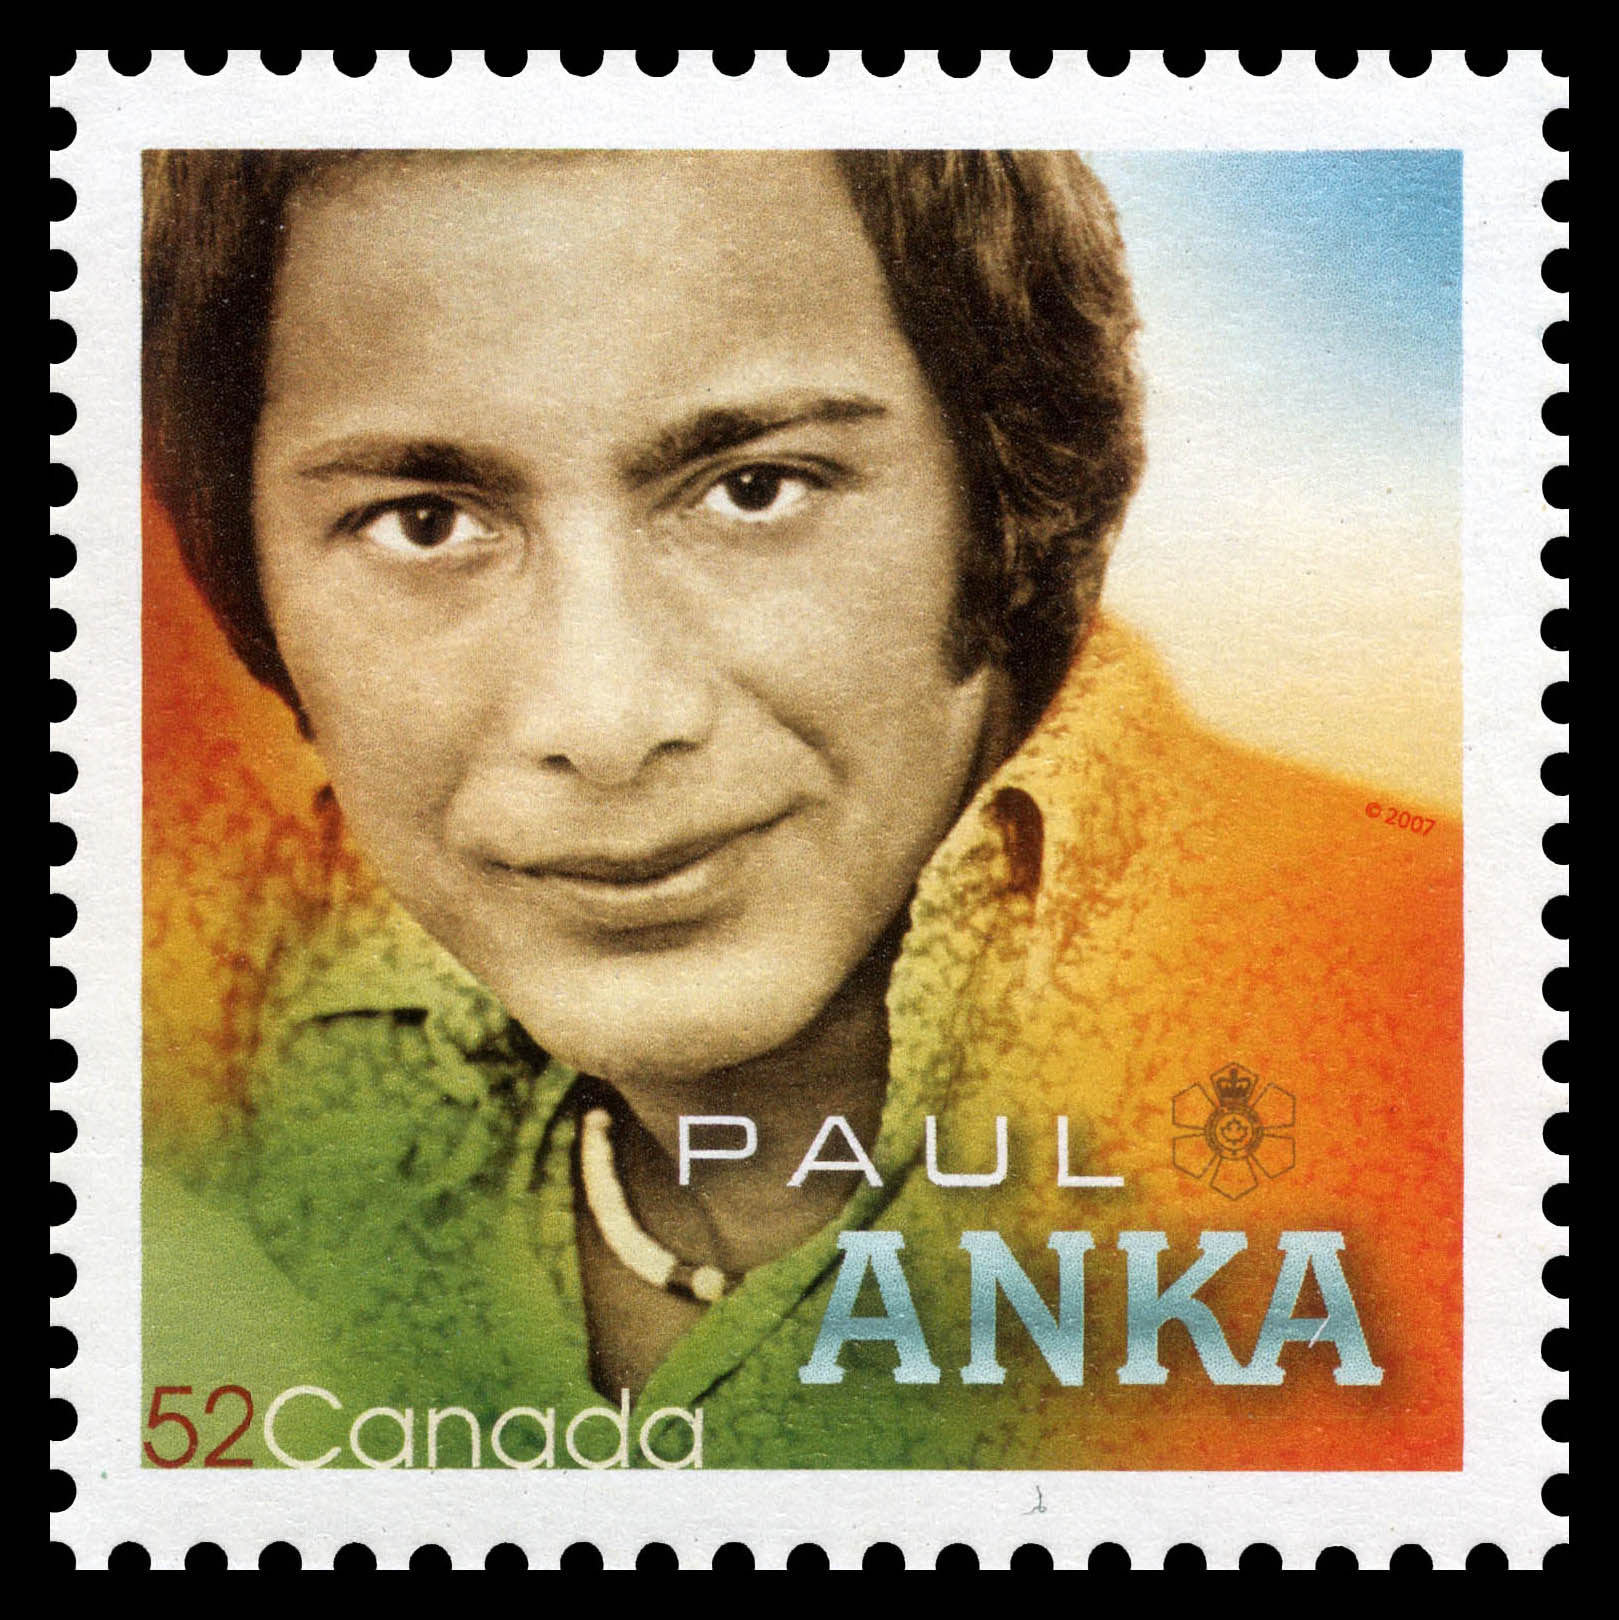 Paul Anka Canada Postage Stamp | Canadian Recording Artists